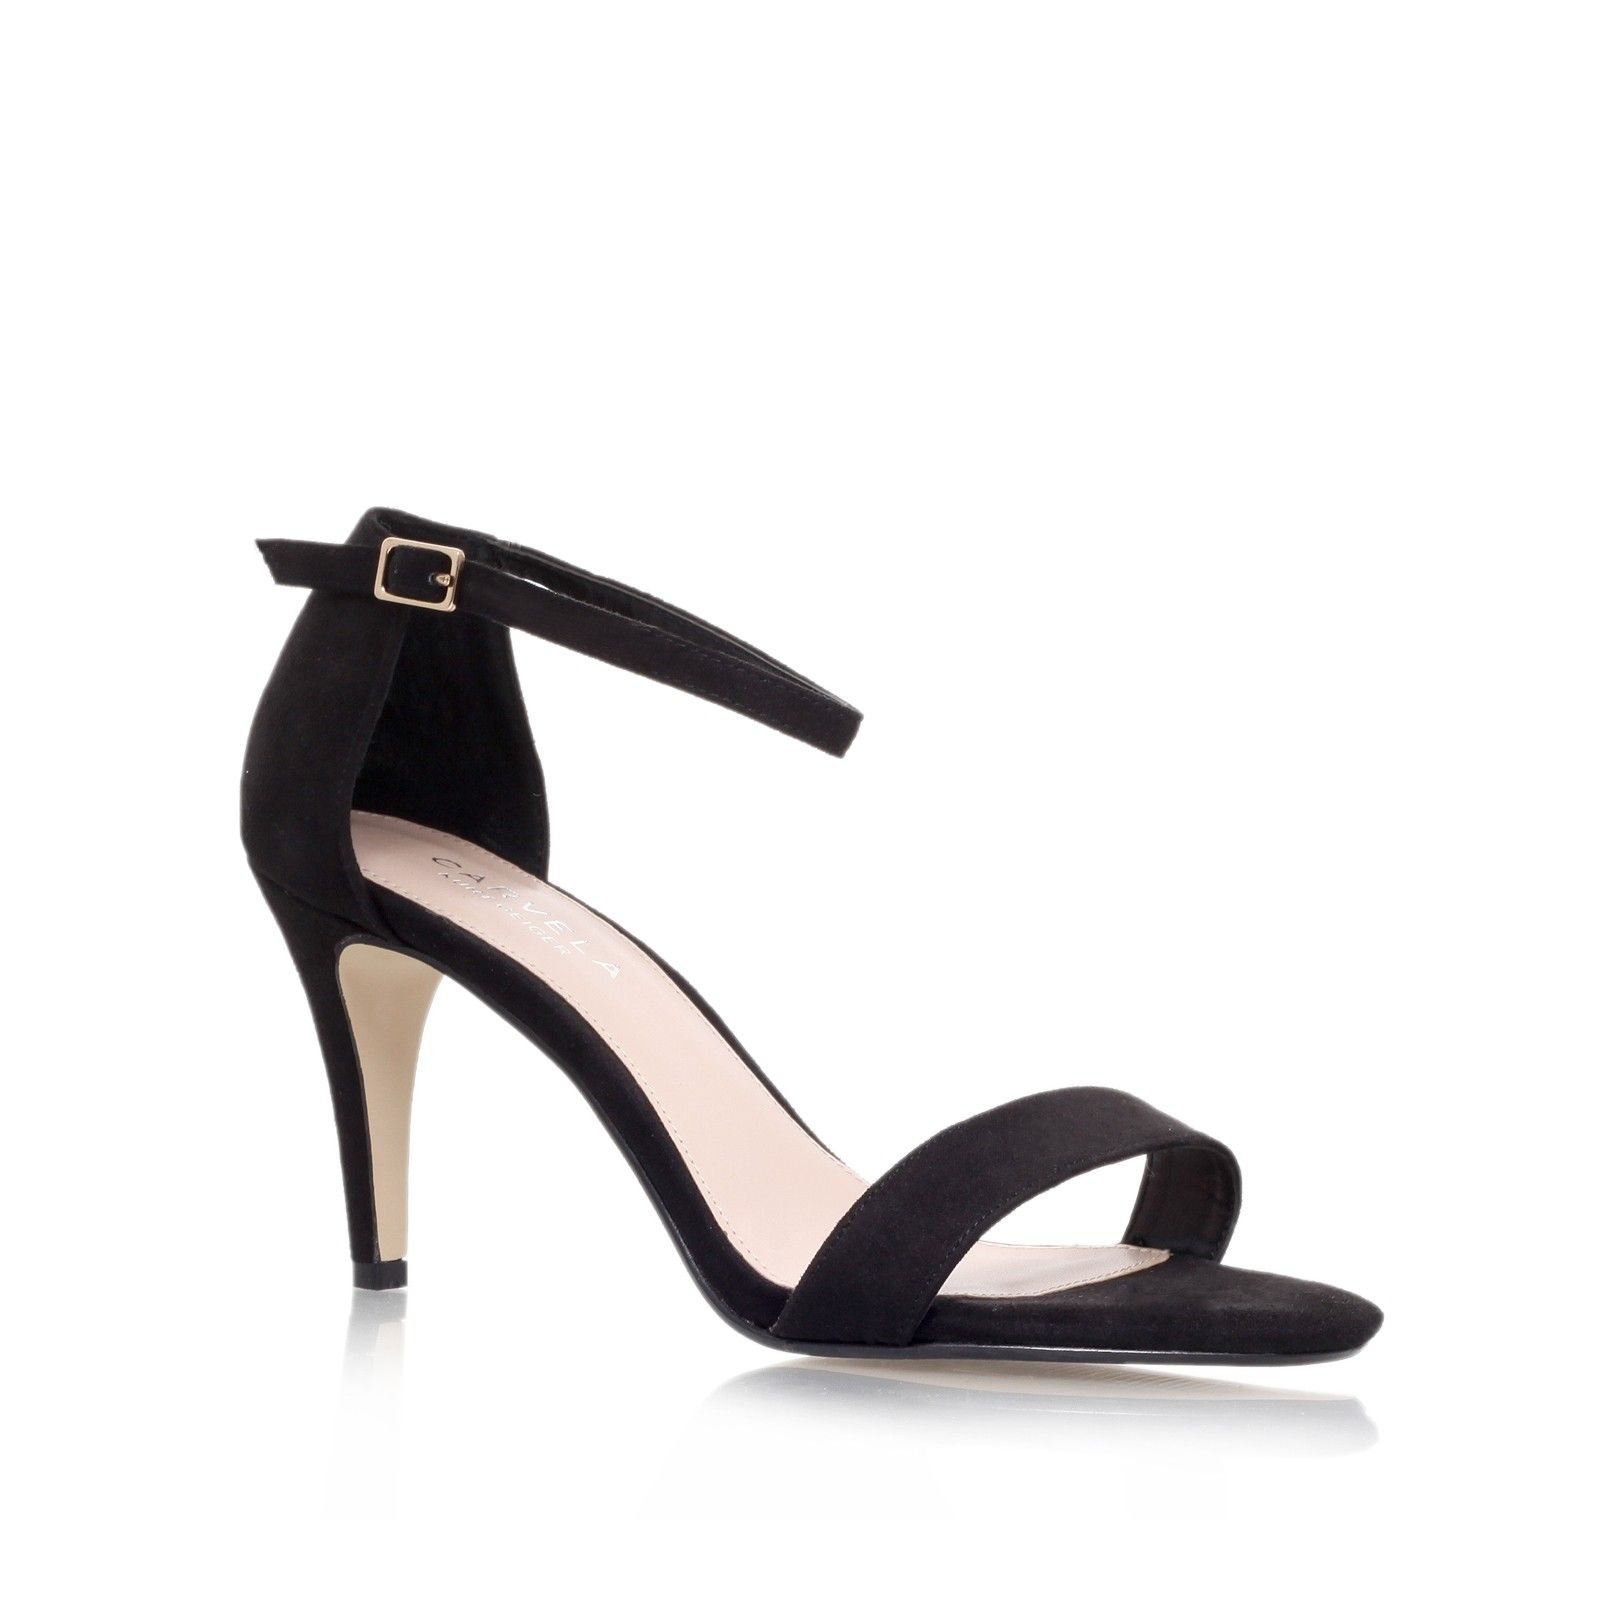 77ca1b884 kiwi black mid heel sandals from Carvela Kurt Geiger